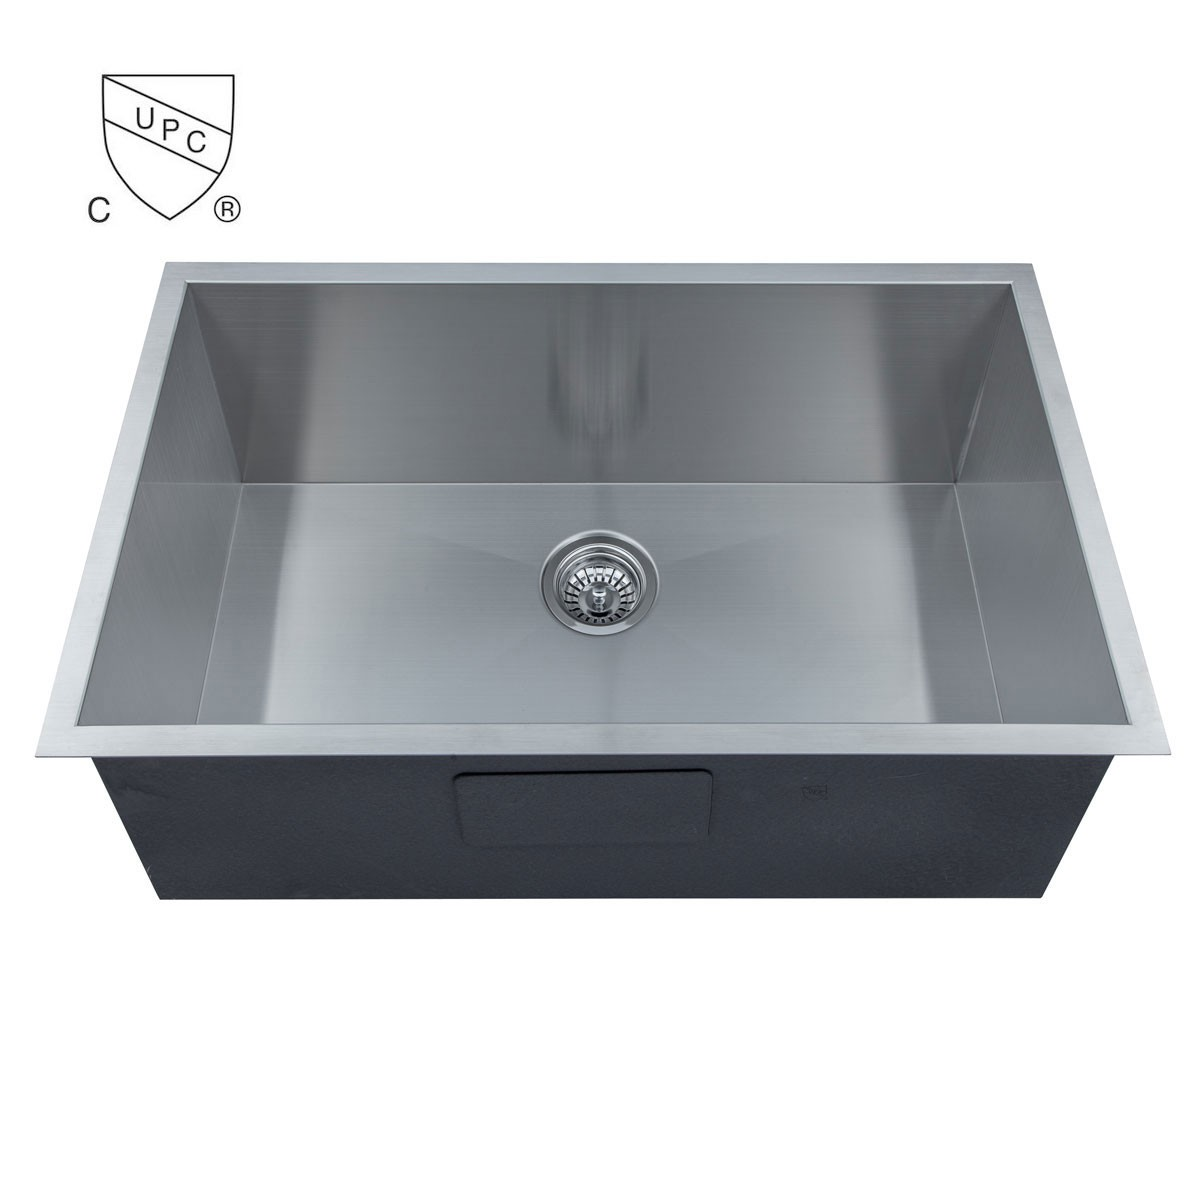 30 x 18 in stainless steel single bowl handmade kitchen sink 30 x 18 in stainless steel single bowl handmade kitchen sink as3018 r0 workwithnaturefo